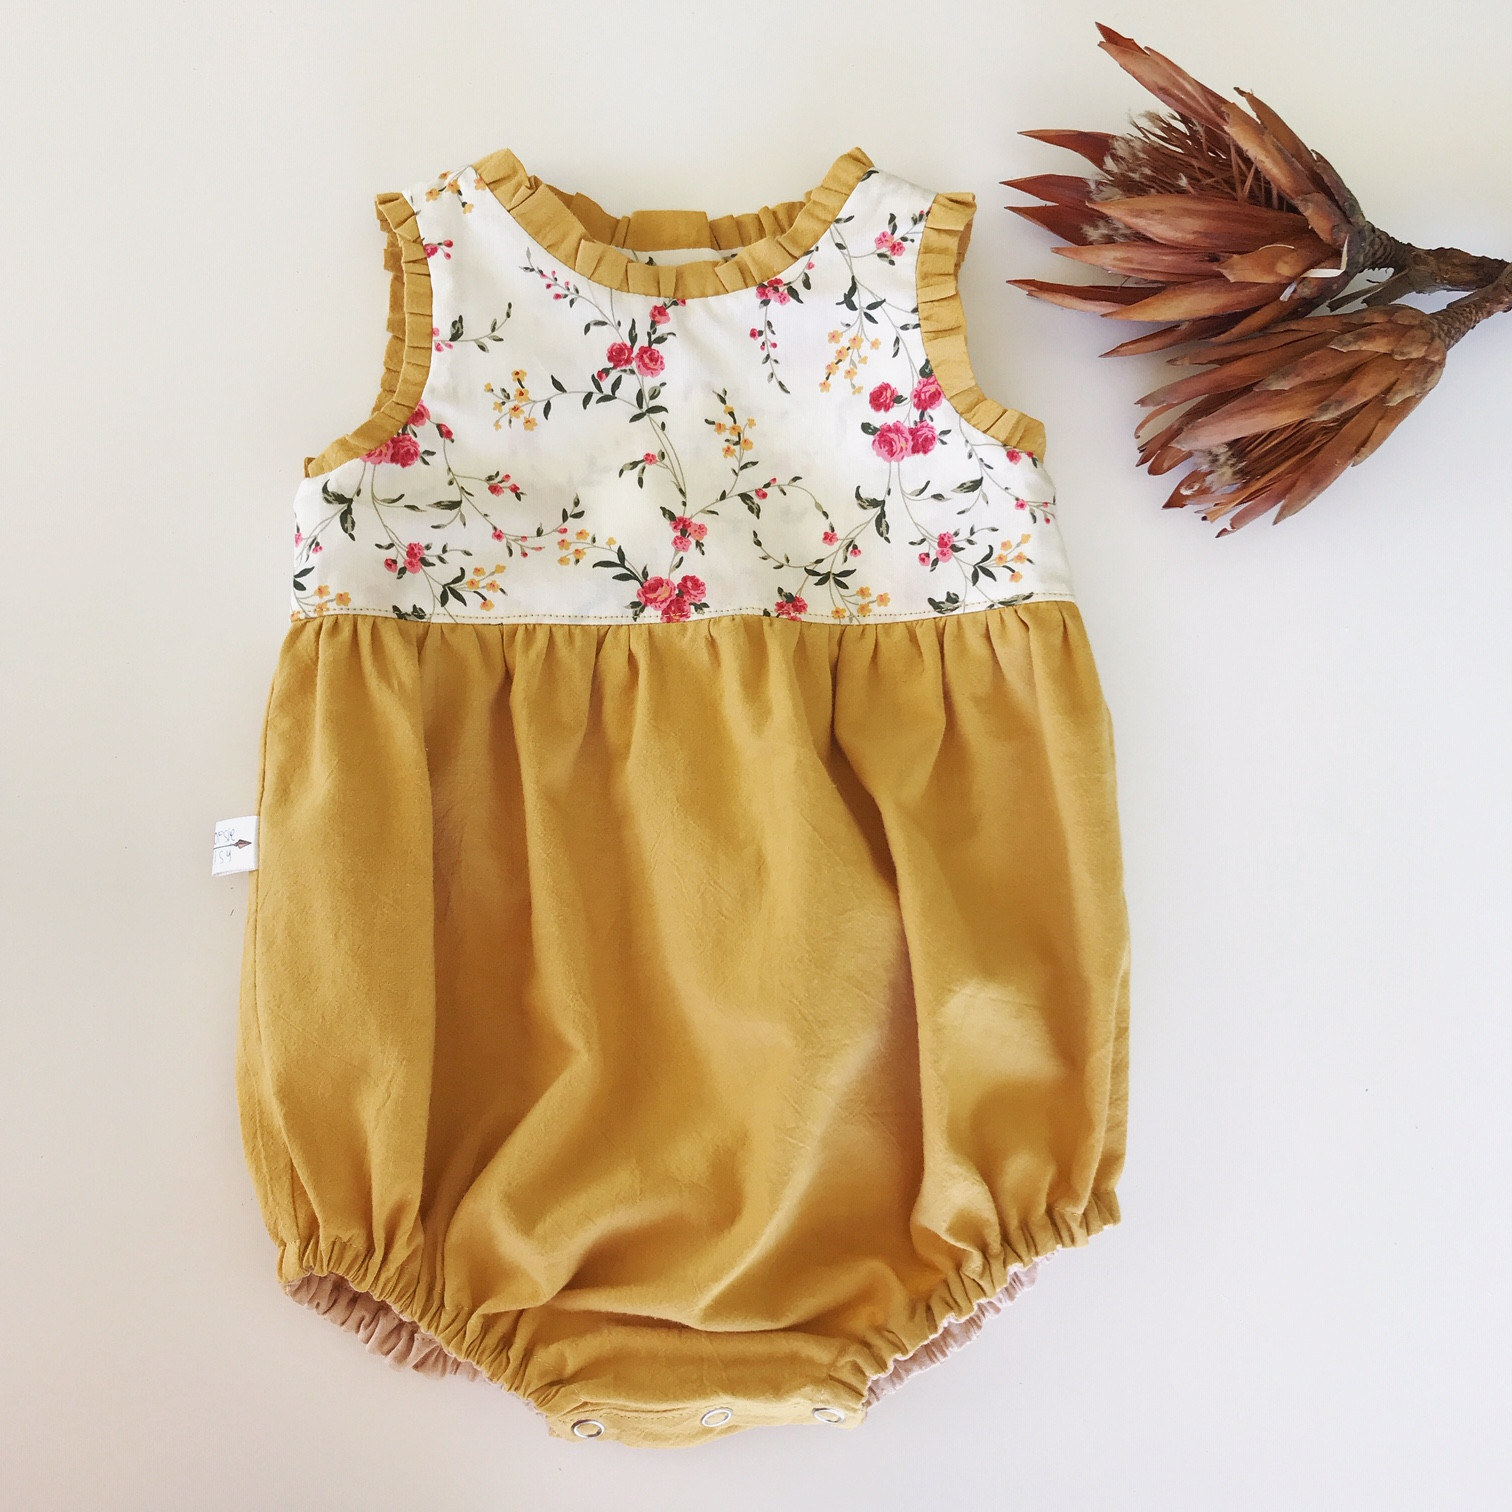 A new addition to our Autumn 2019 range. This romper is made with soft medium weight, mustard & floral cotton material. Cute ruffle accents along the neckline and arm holes. Button closure on the back bodice and snap closure at the crotch.  Pare this romper with a simple long sleeve vest and knee high socks and your little one will be oh so stylish.